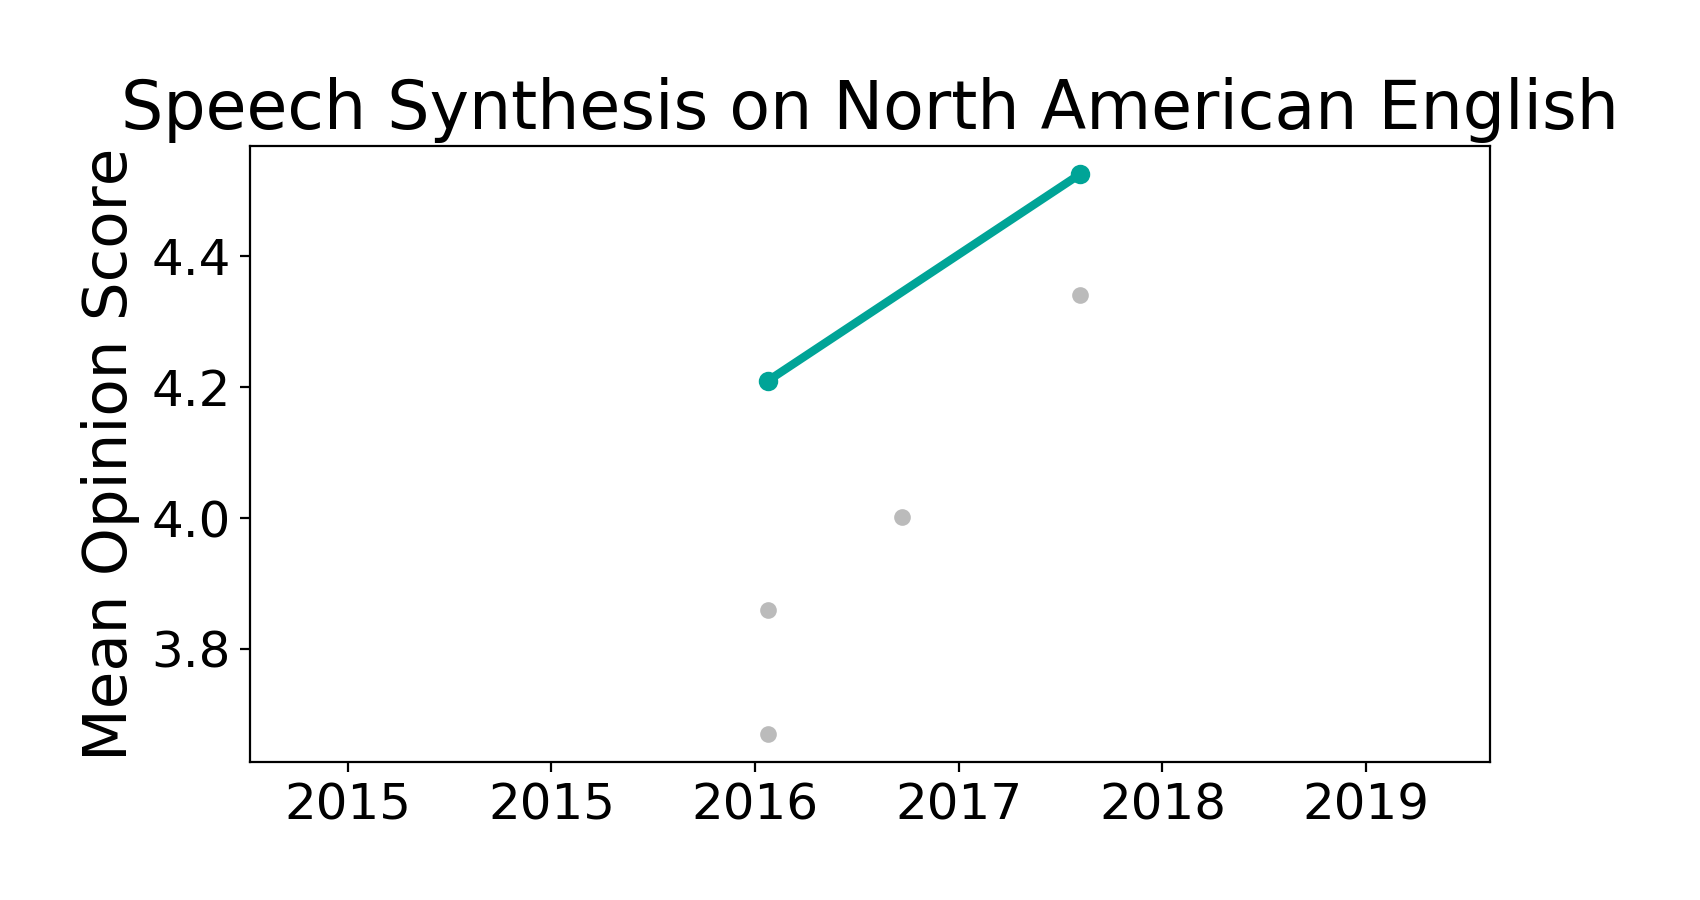 State-of-the-art table for Speech Synthesis on North American English